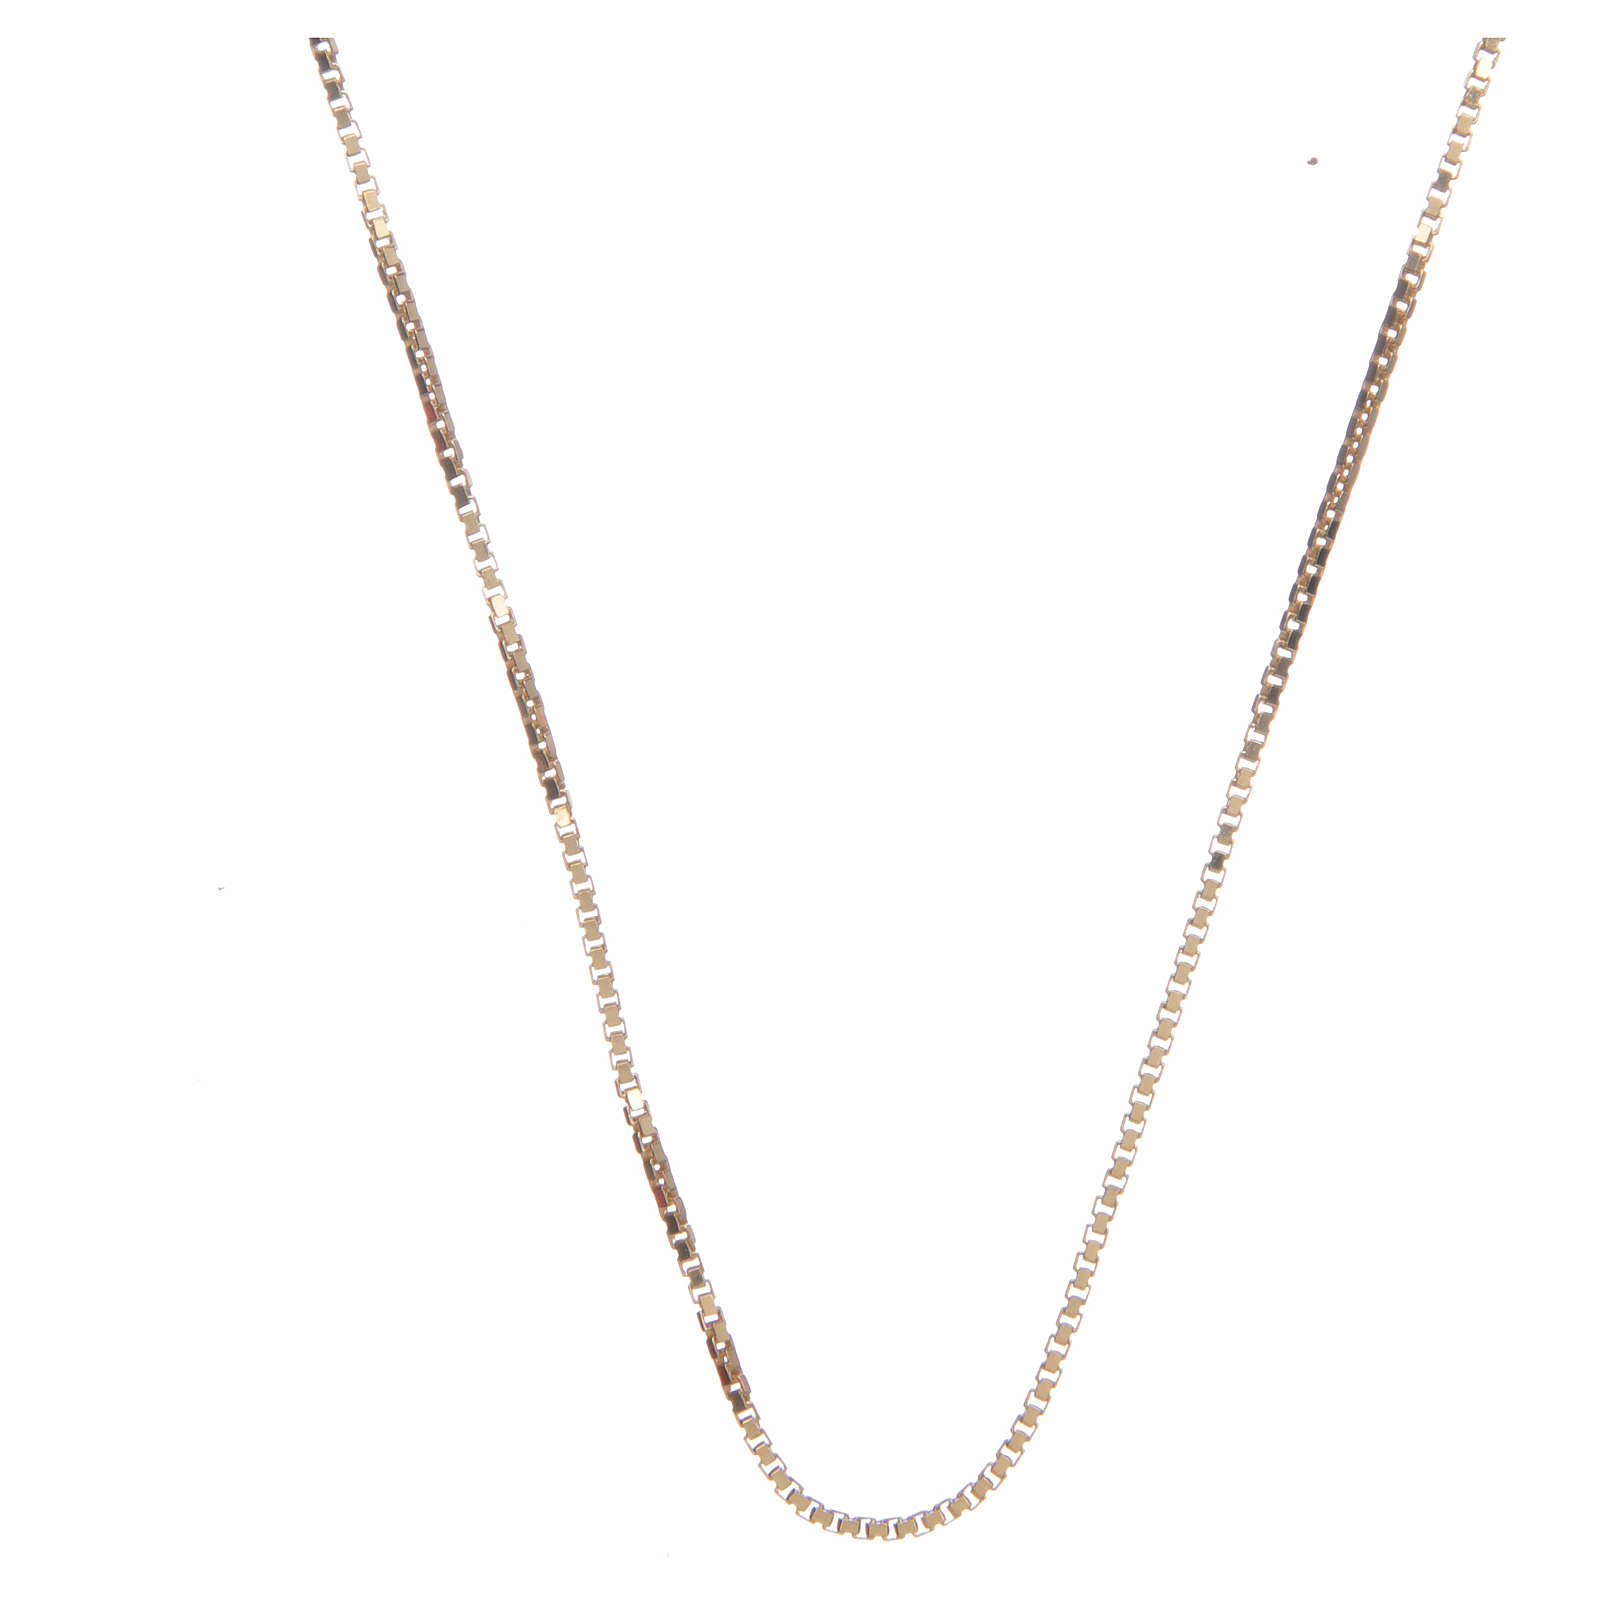 Venetian chain in 925 sterling silver finished in gold 65 cm 4